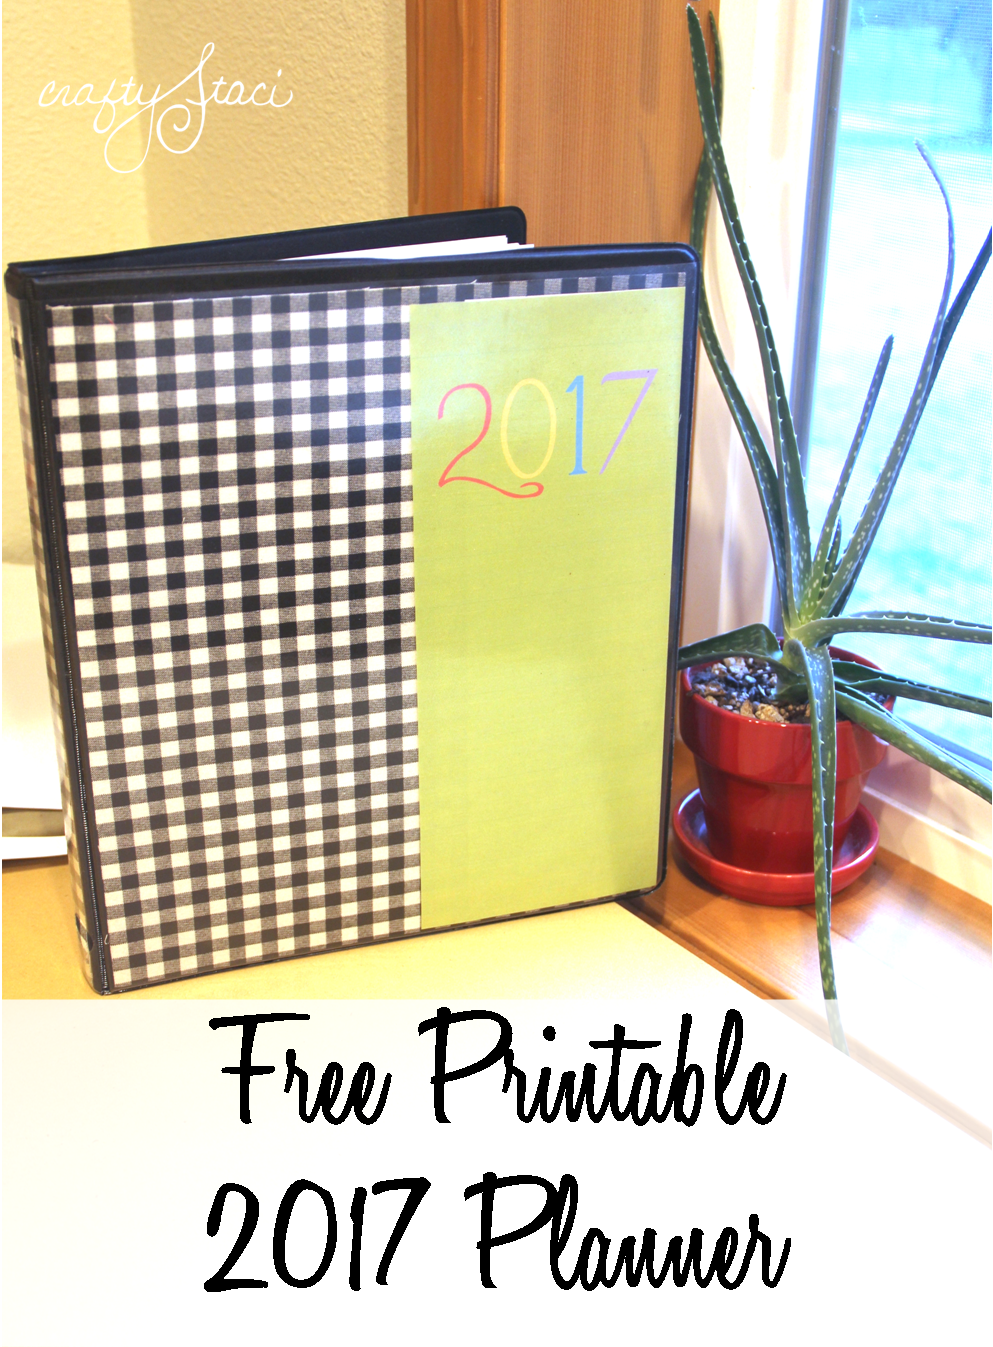 Printable 2017 Planner from Crafty Staci